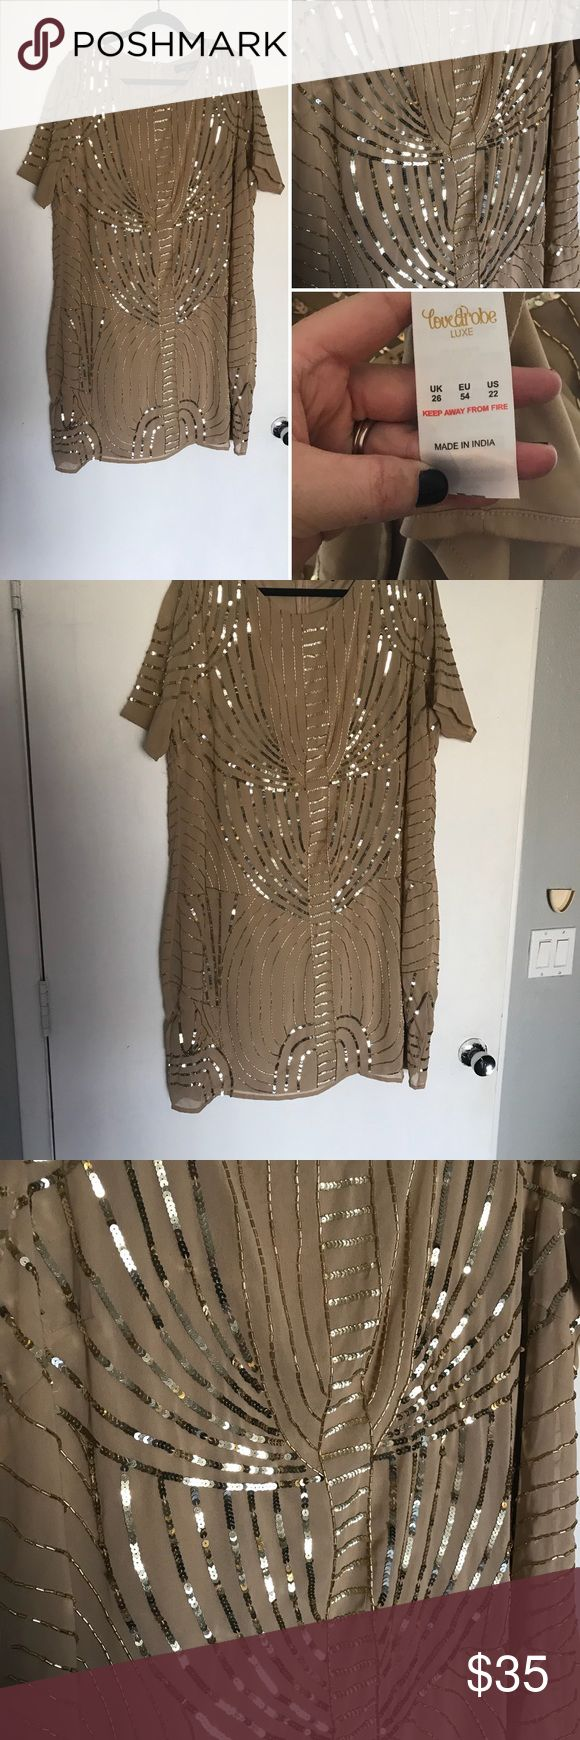 Never worn Size 22 ASOS cocktail dress I wanted to find somewhere to wear this and never did! It has got great heading!! Excellent condition and smoke free home 🏡  I am a size 18/20 in most ASOS dresses, but this size 22 was perfect in this style because there is no stretch! ASOS Curve Dresses Wedding